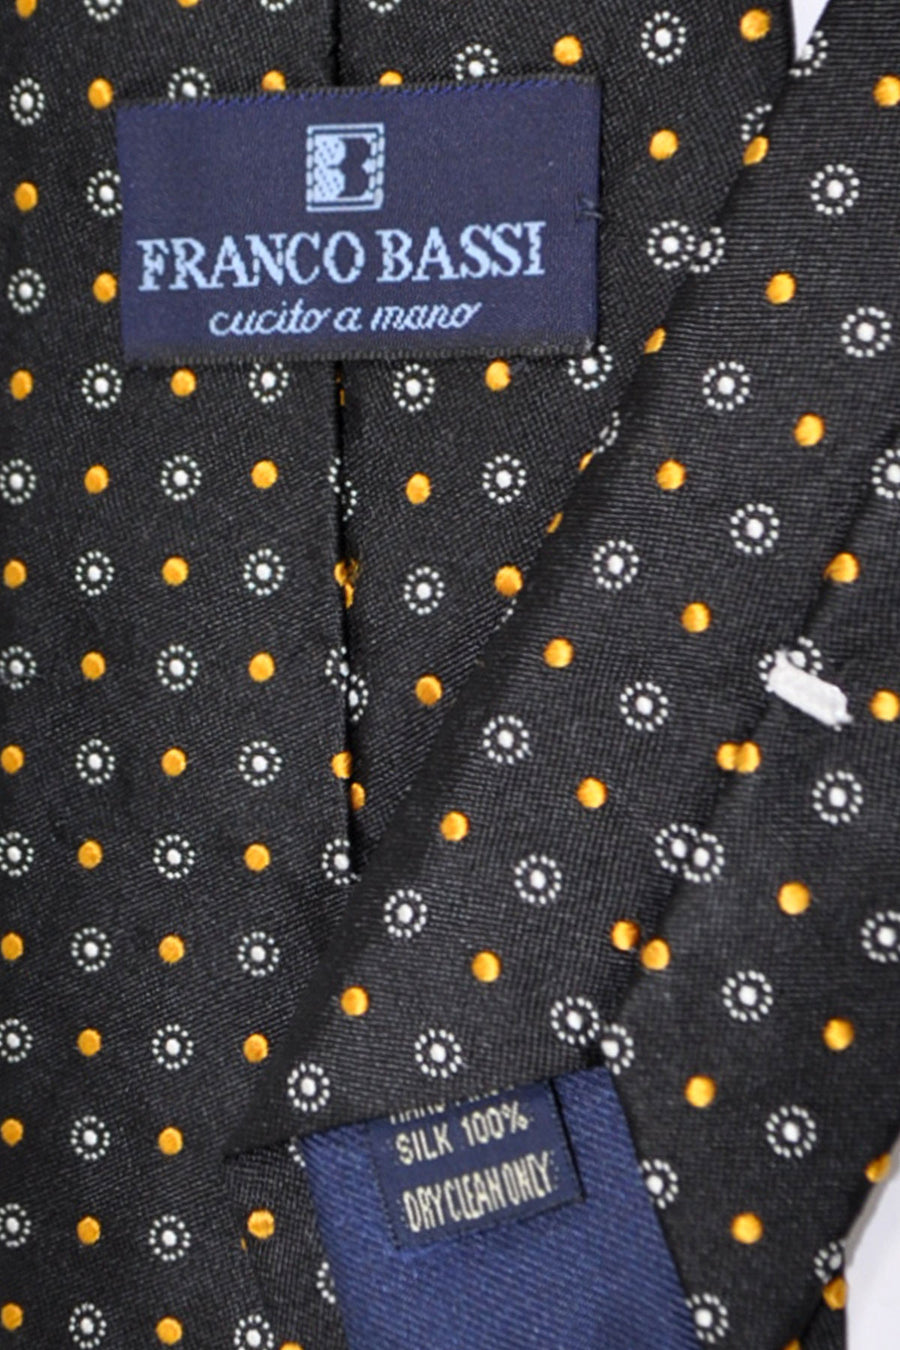 Franco Bassi Tie Black Gold Geometric - Made in Italy